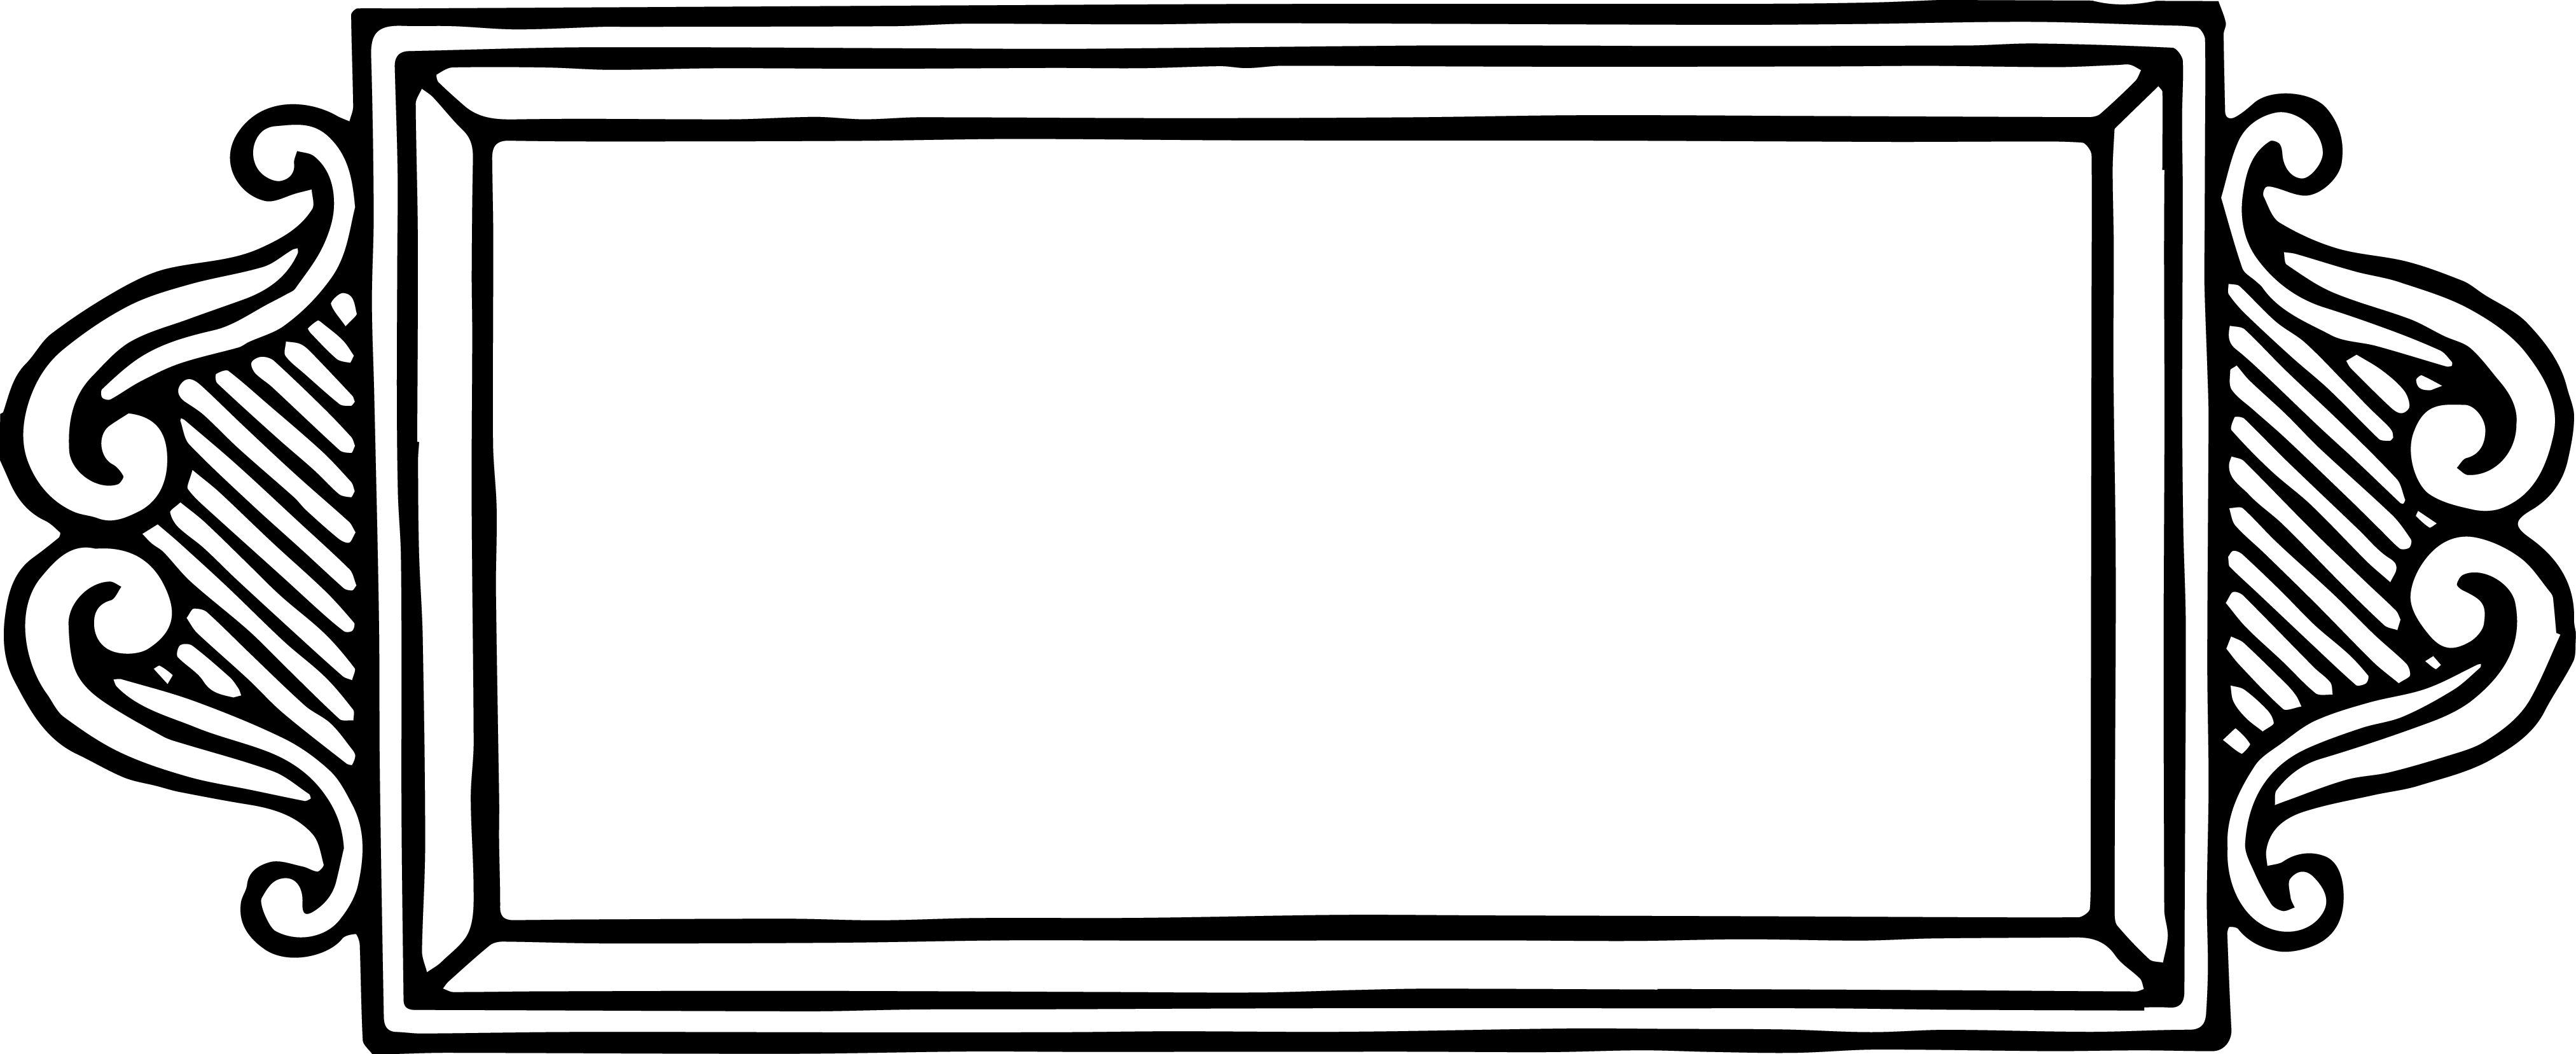 4050x1657 Vintage Frame Border Oh So Nifty Vintage Graphics